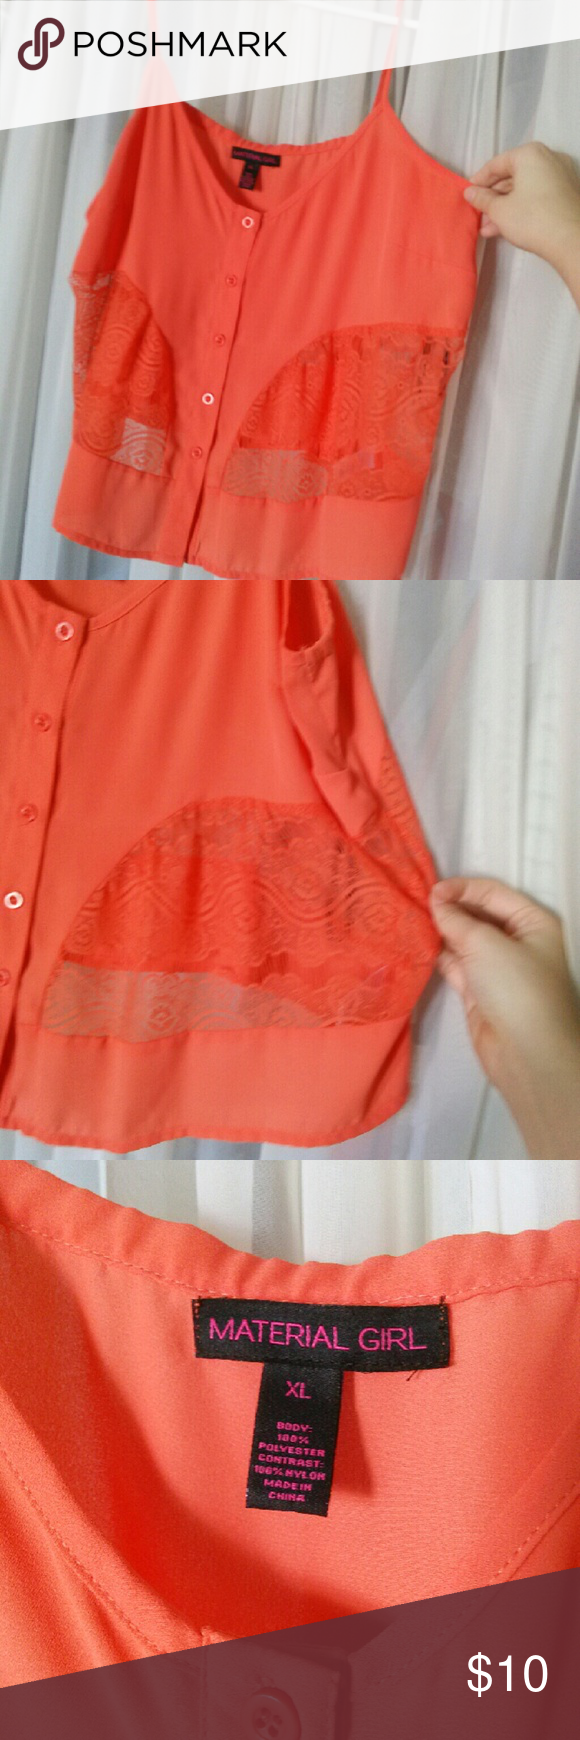 Pink see through lace dress  Orange lace chiffon button crop top Orange with lace see through